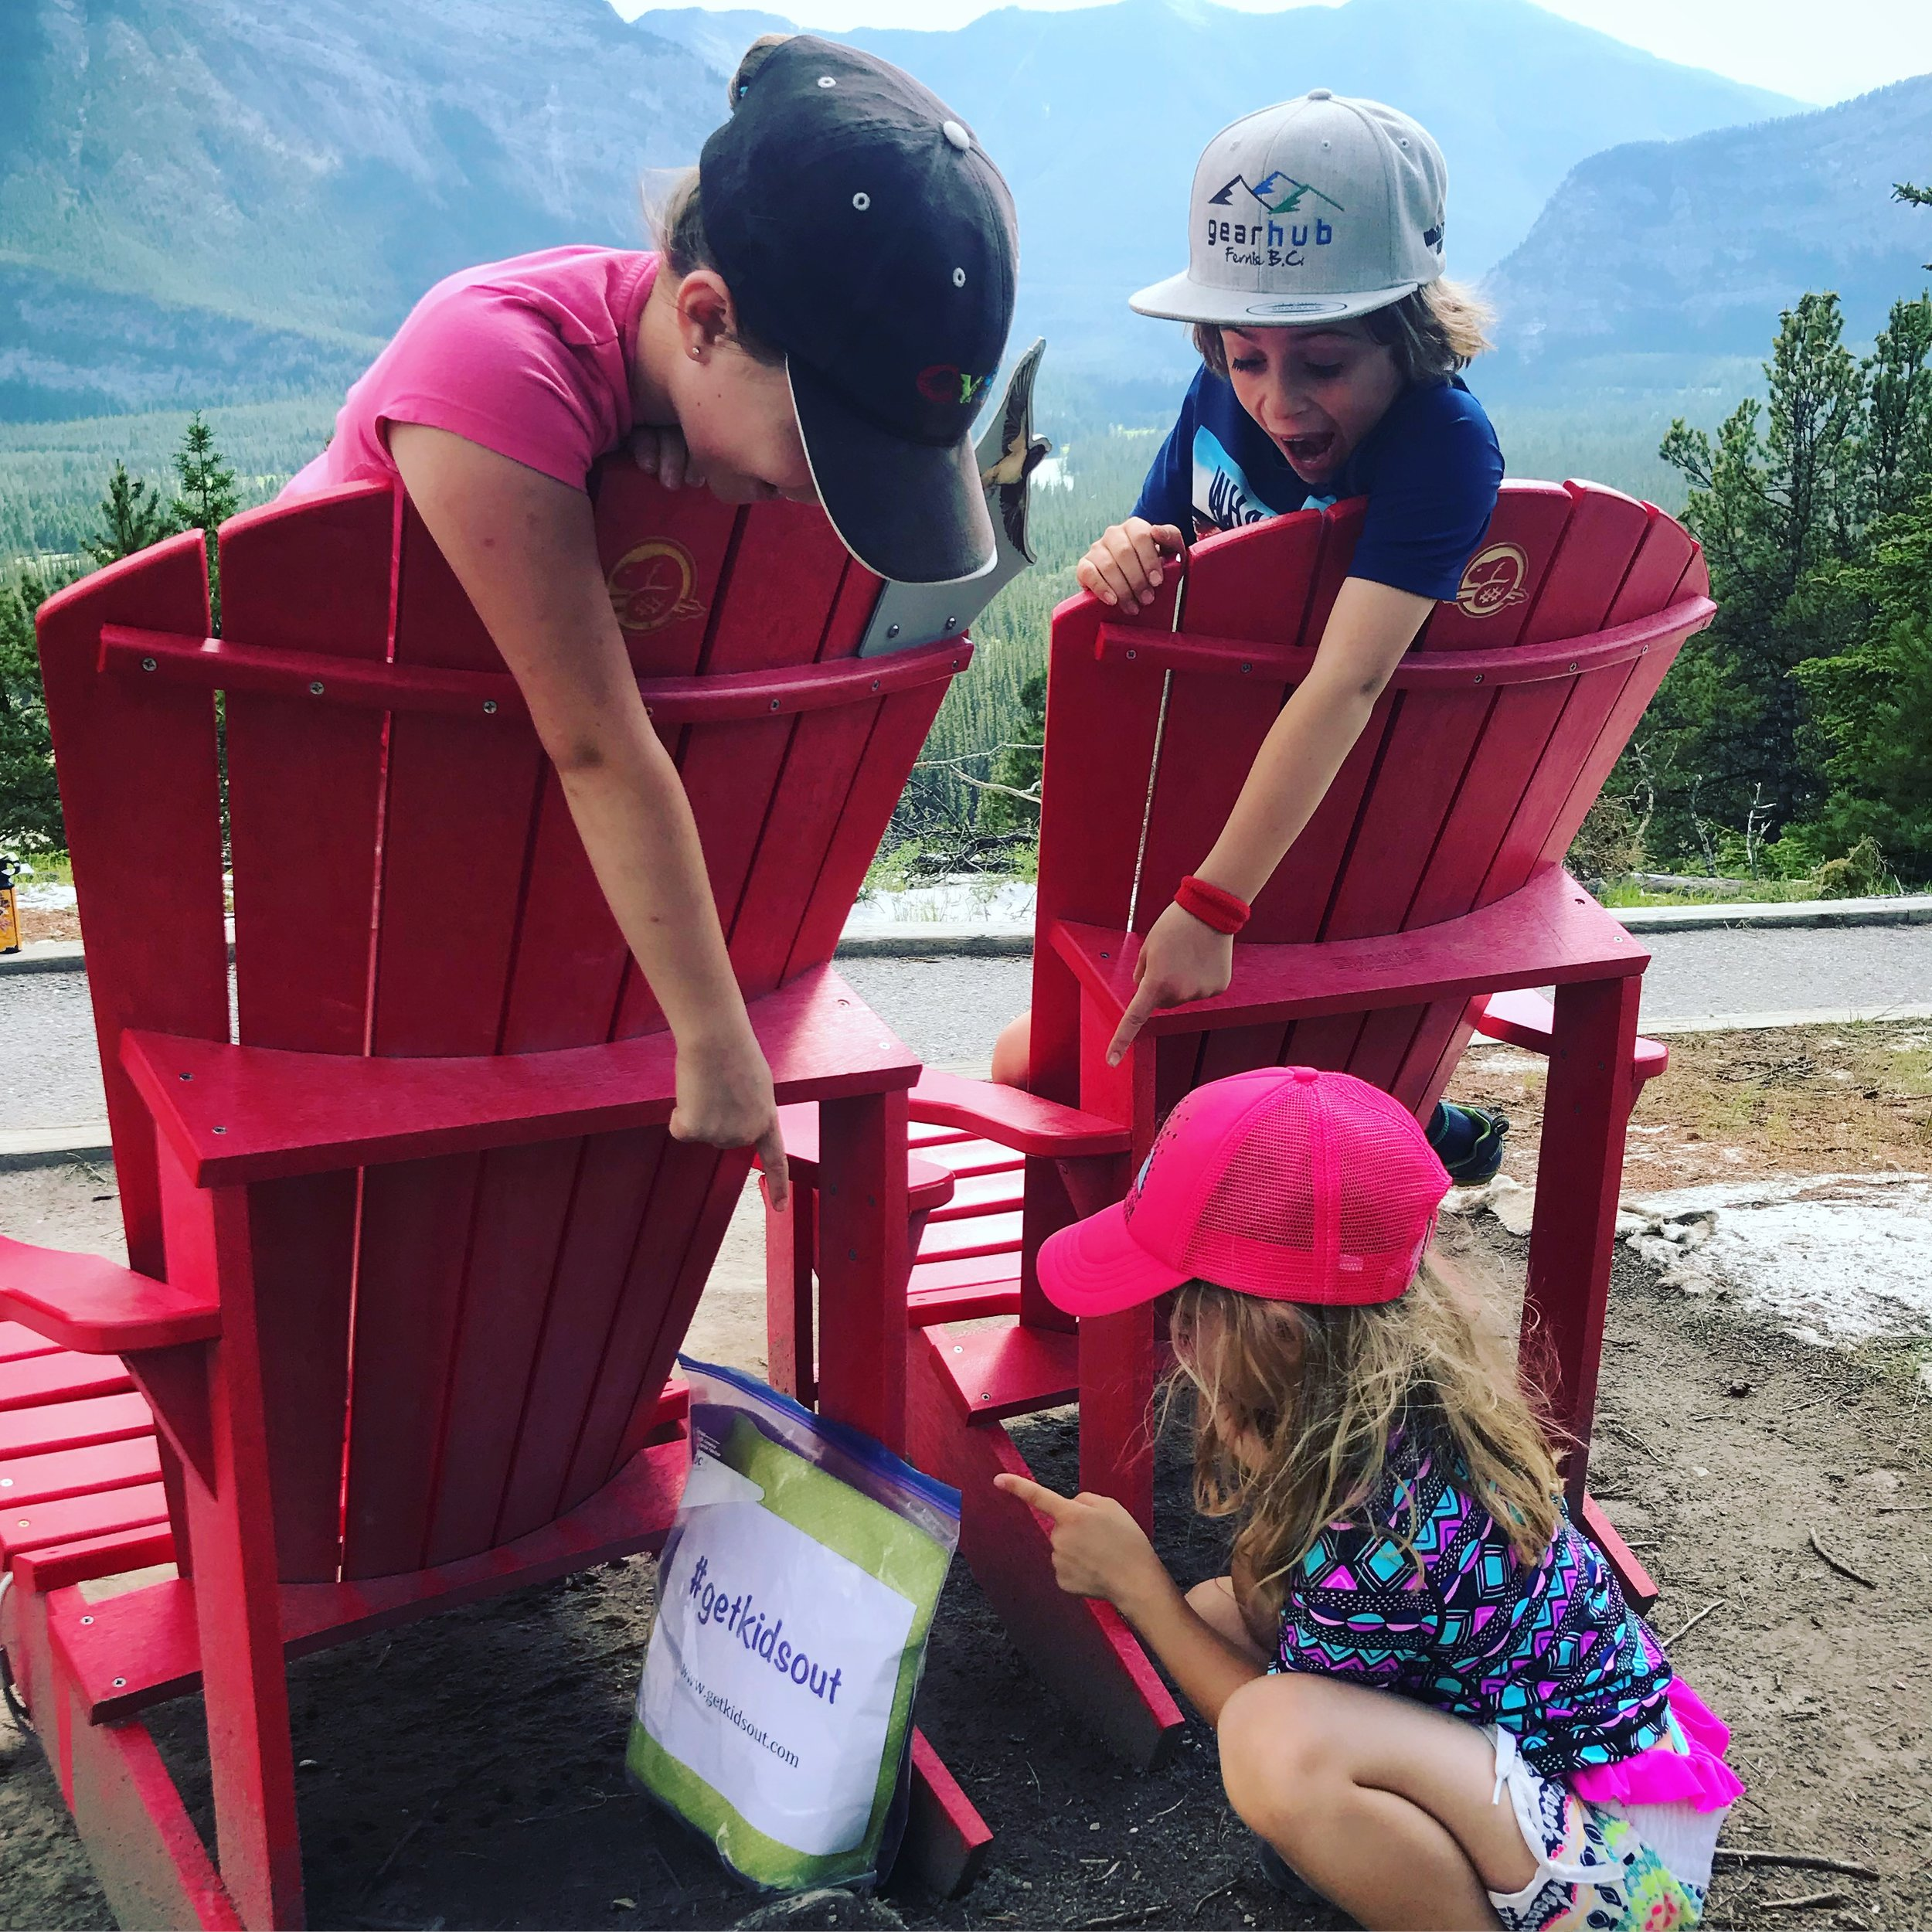 #getkidsoutTreasure bag #1 - The first #getkidsout treasure bag was released in Banff National Park. At this time, it has not been reported found.